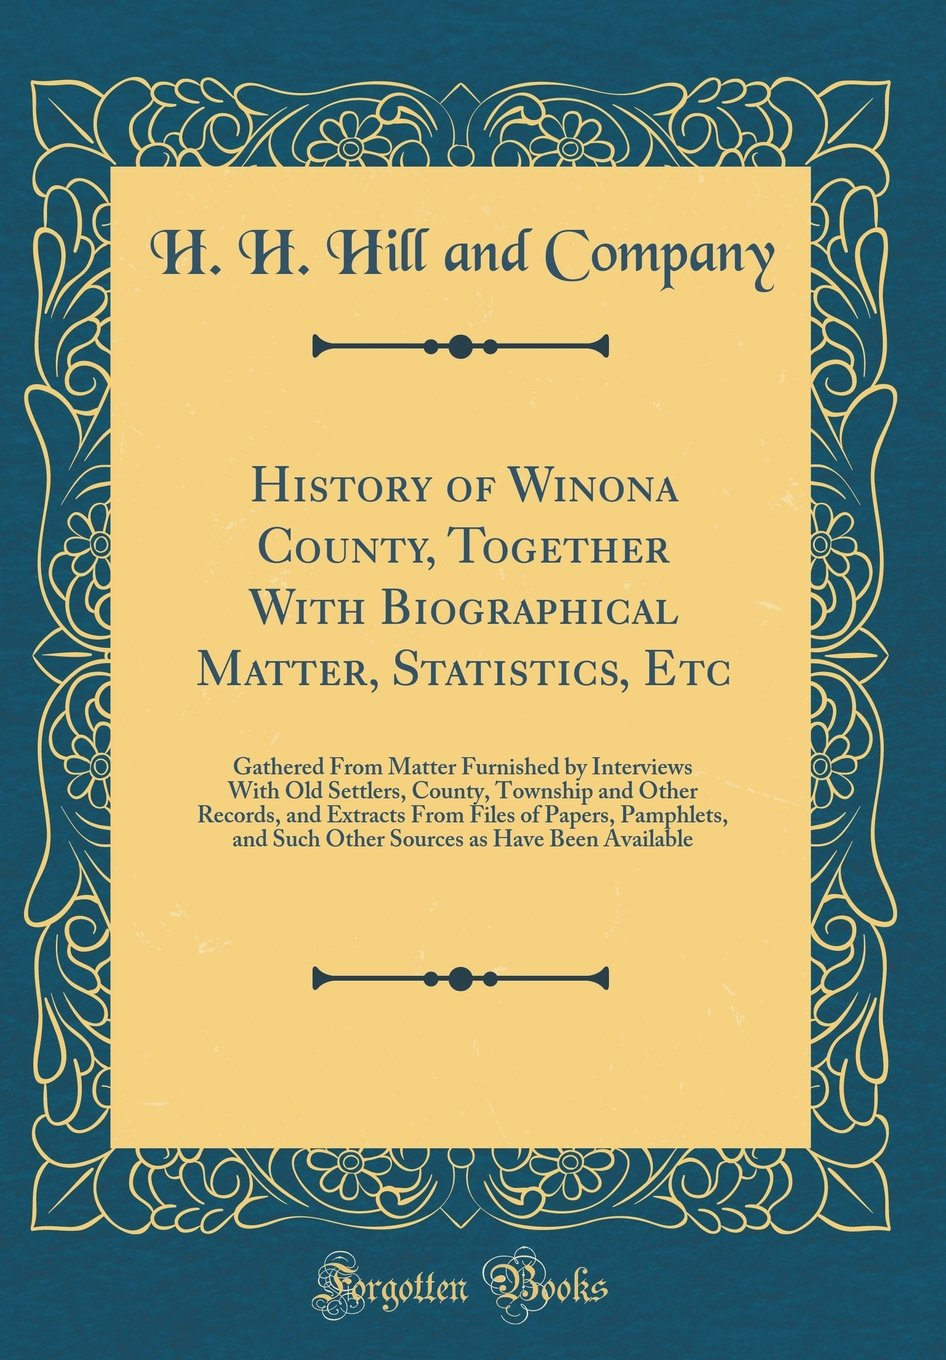 Read Online History of Winona County, Together with Biographical Matter, Statistics, Etc: Gathered from Matter Furnished by Interviews with Old Settlers, County, ... Pamphlets, and Such Other Sources as Have ebook